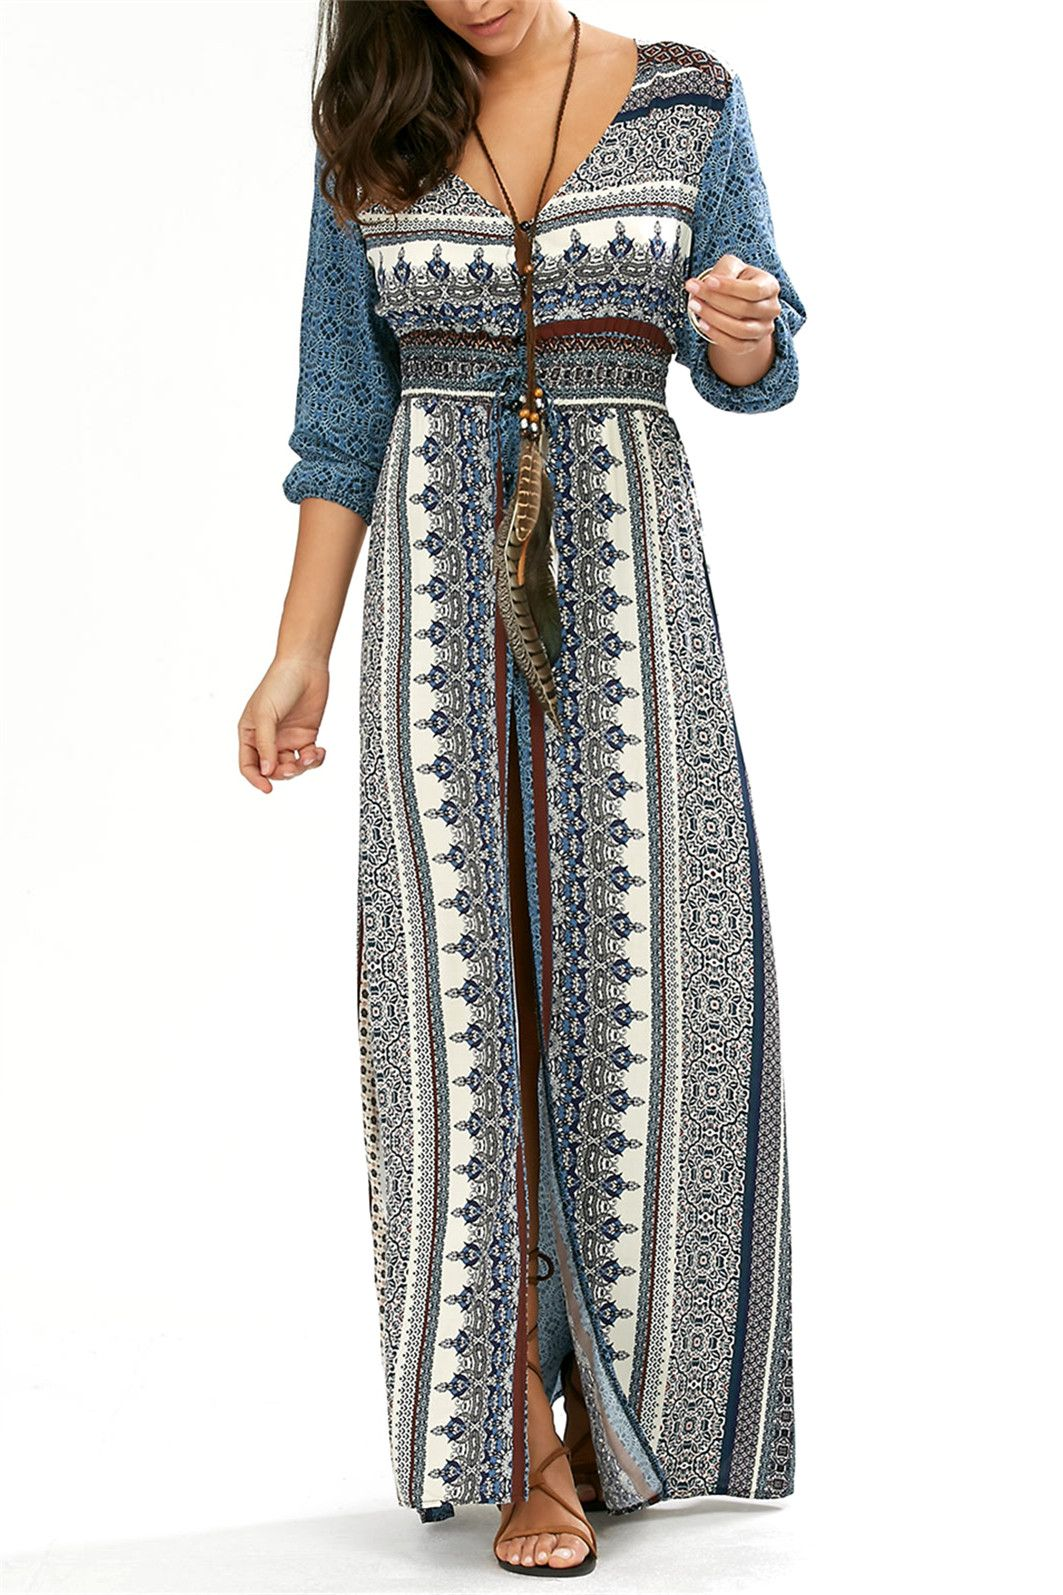 ... Style Dresses Cheap Online Sale.  18.89 Empire Waist Button Down  Bohemian Maxi Dress - Blue https   tmblr. 58d58bf9a3f4